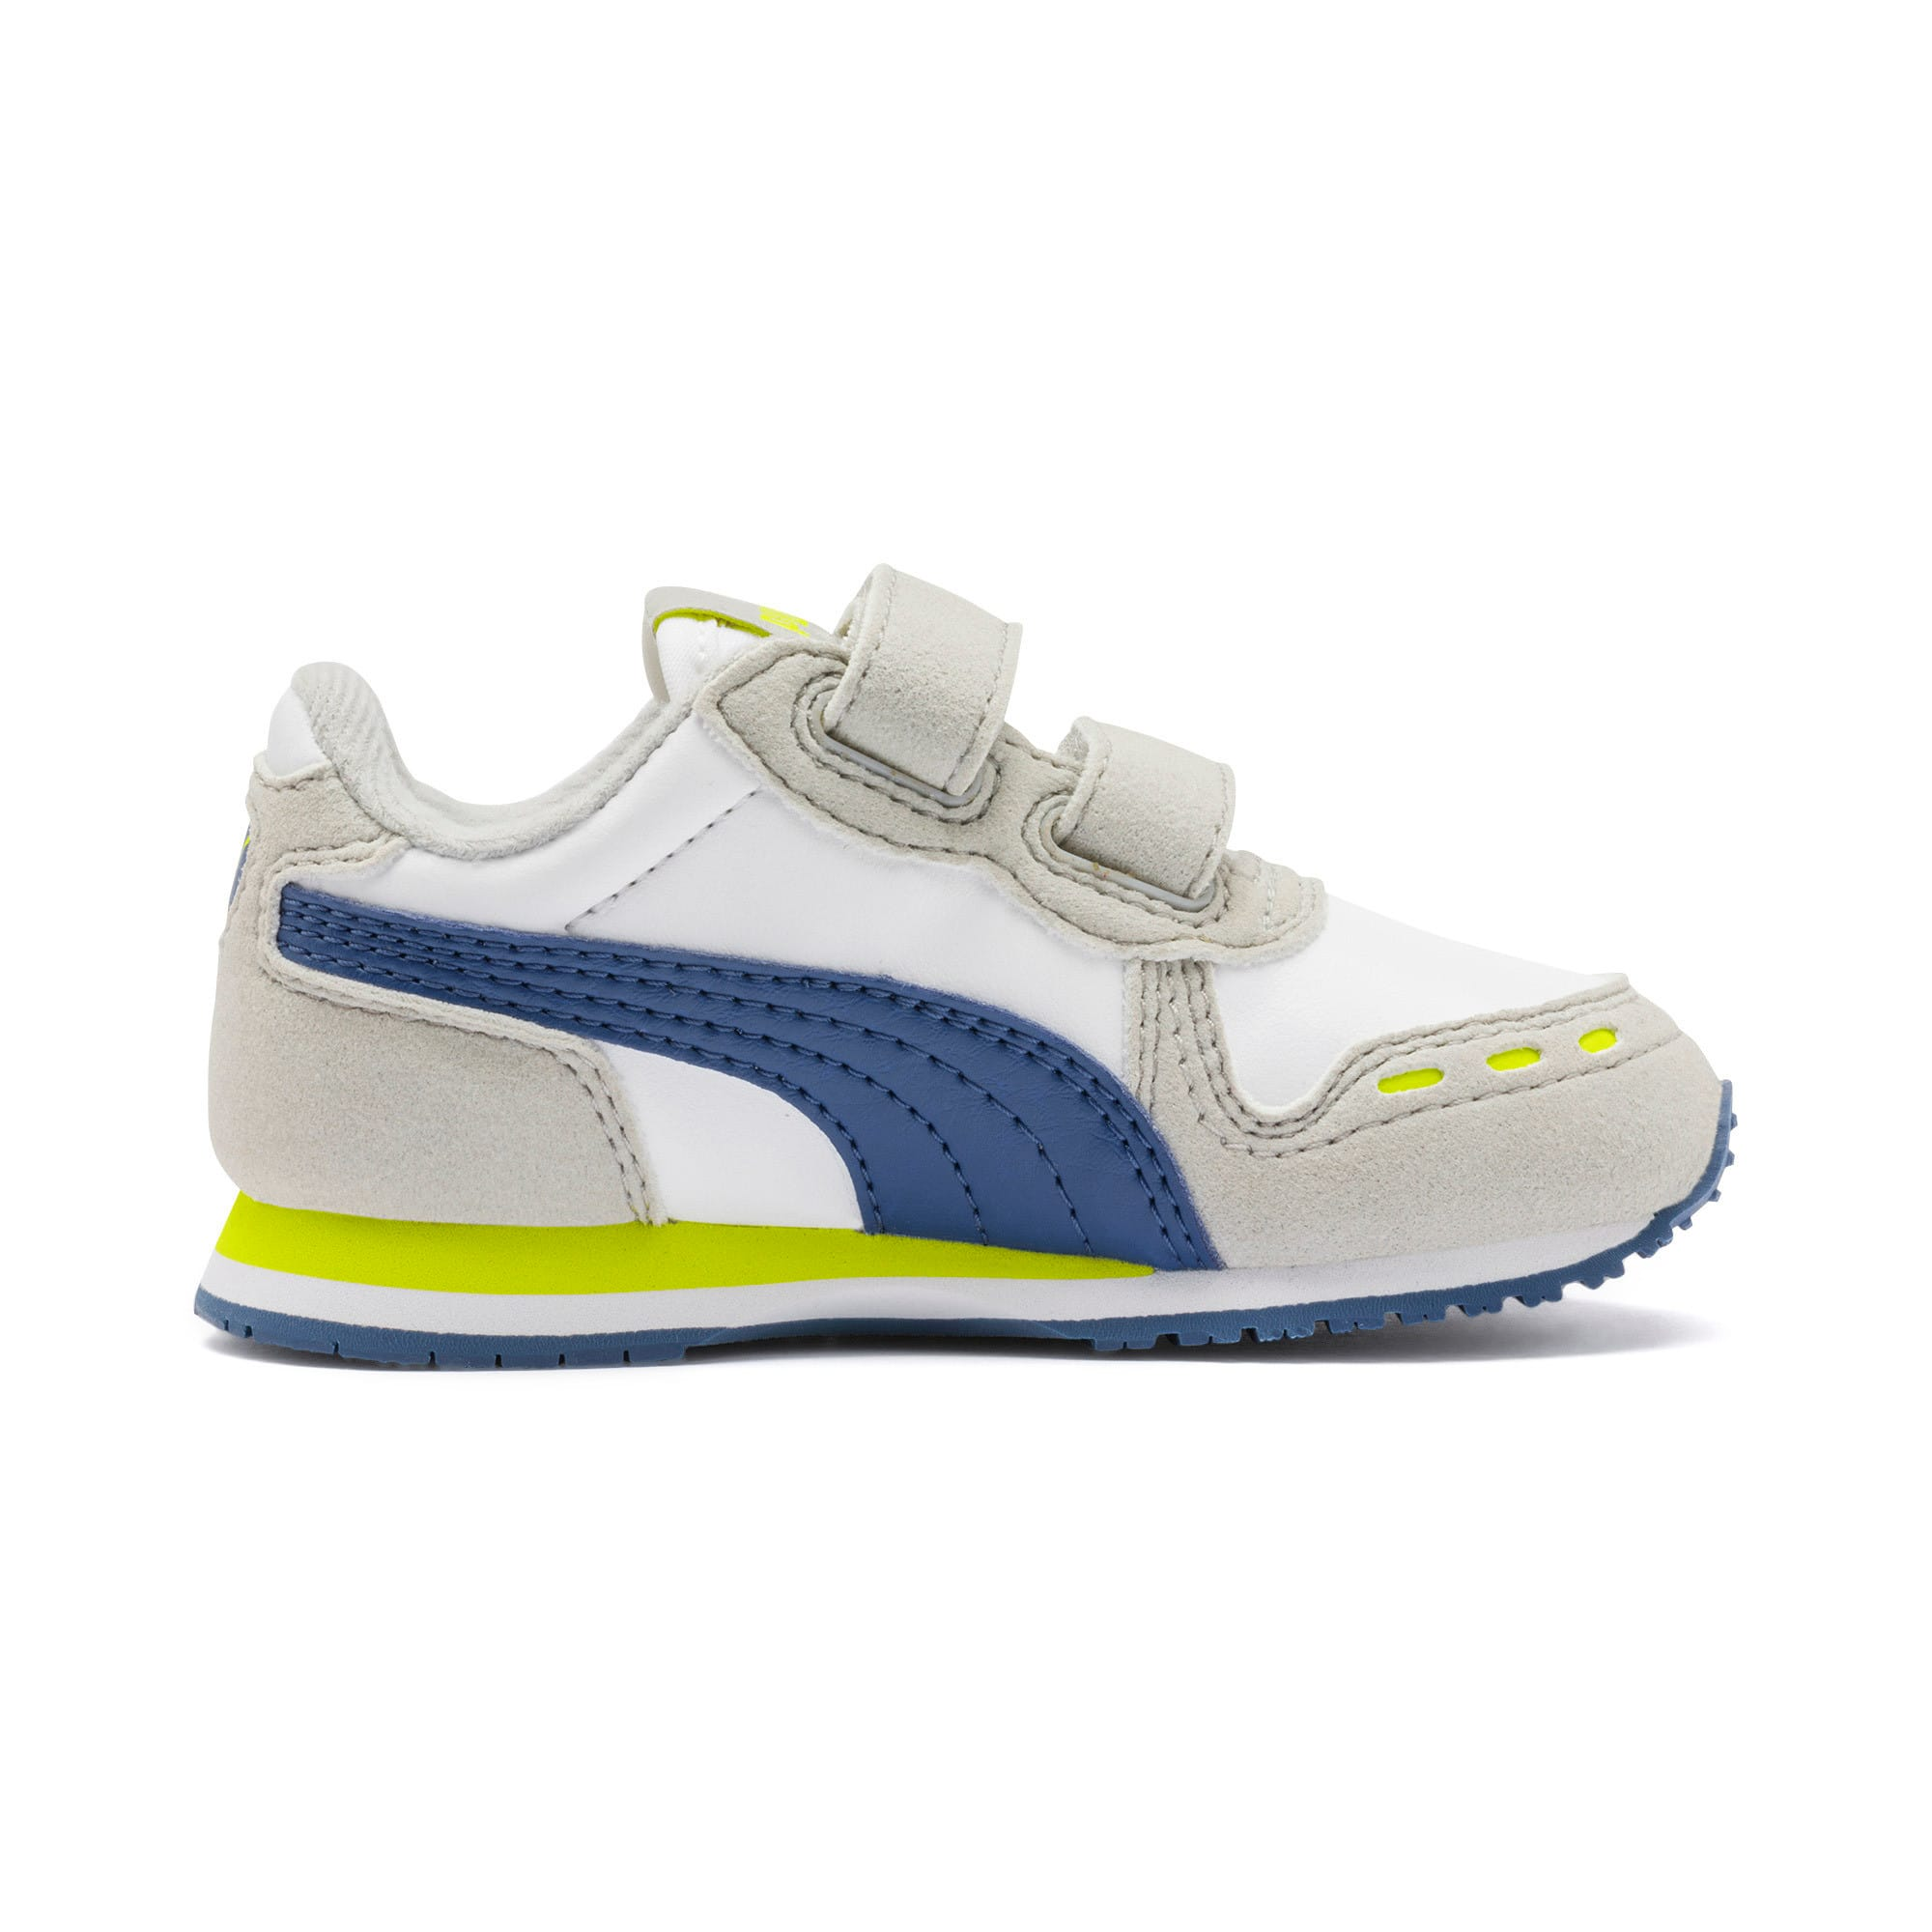 Thumbnail 5 of Cabana Racer SL Toddler Shoes, Puma White-Galaxy Blue, medium